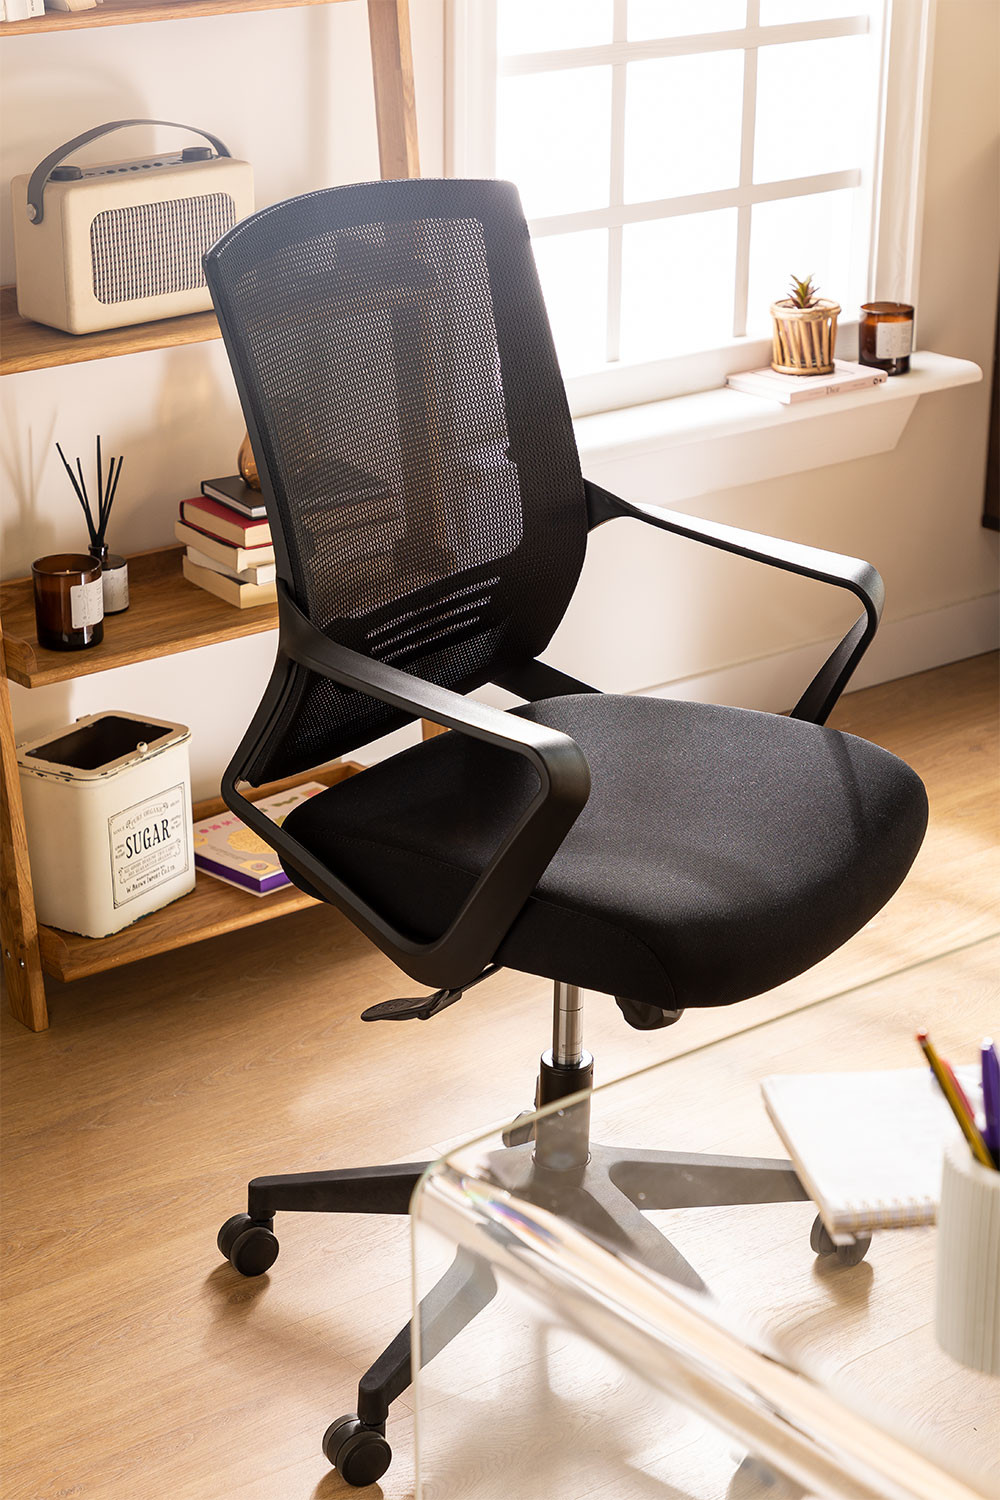 Office Chair with Wheels Work, gallery image 1